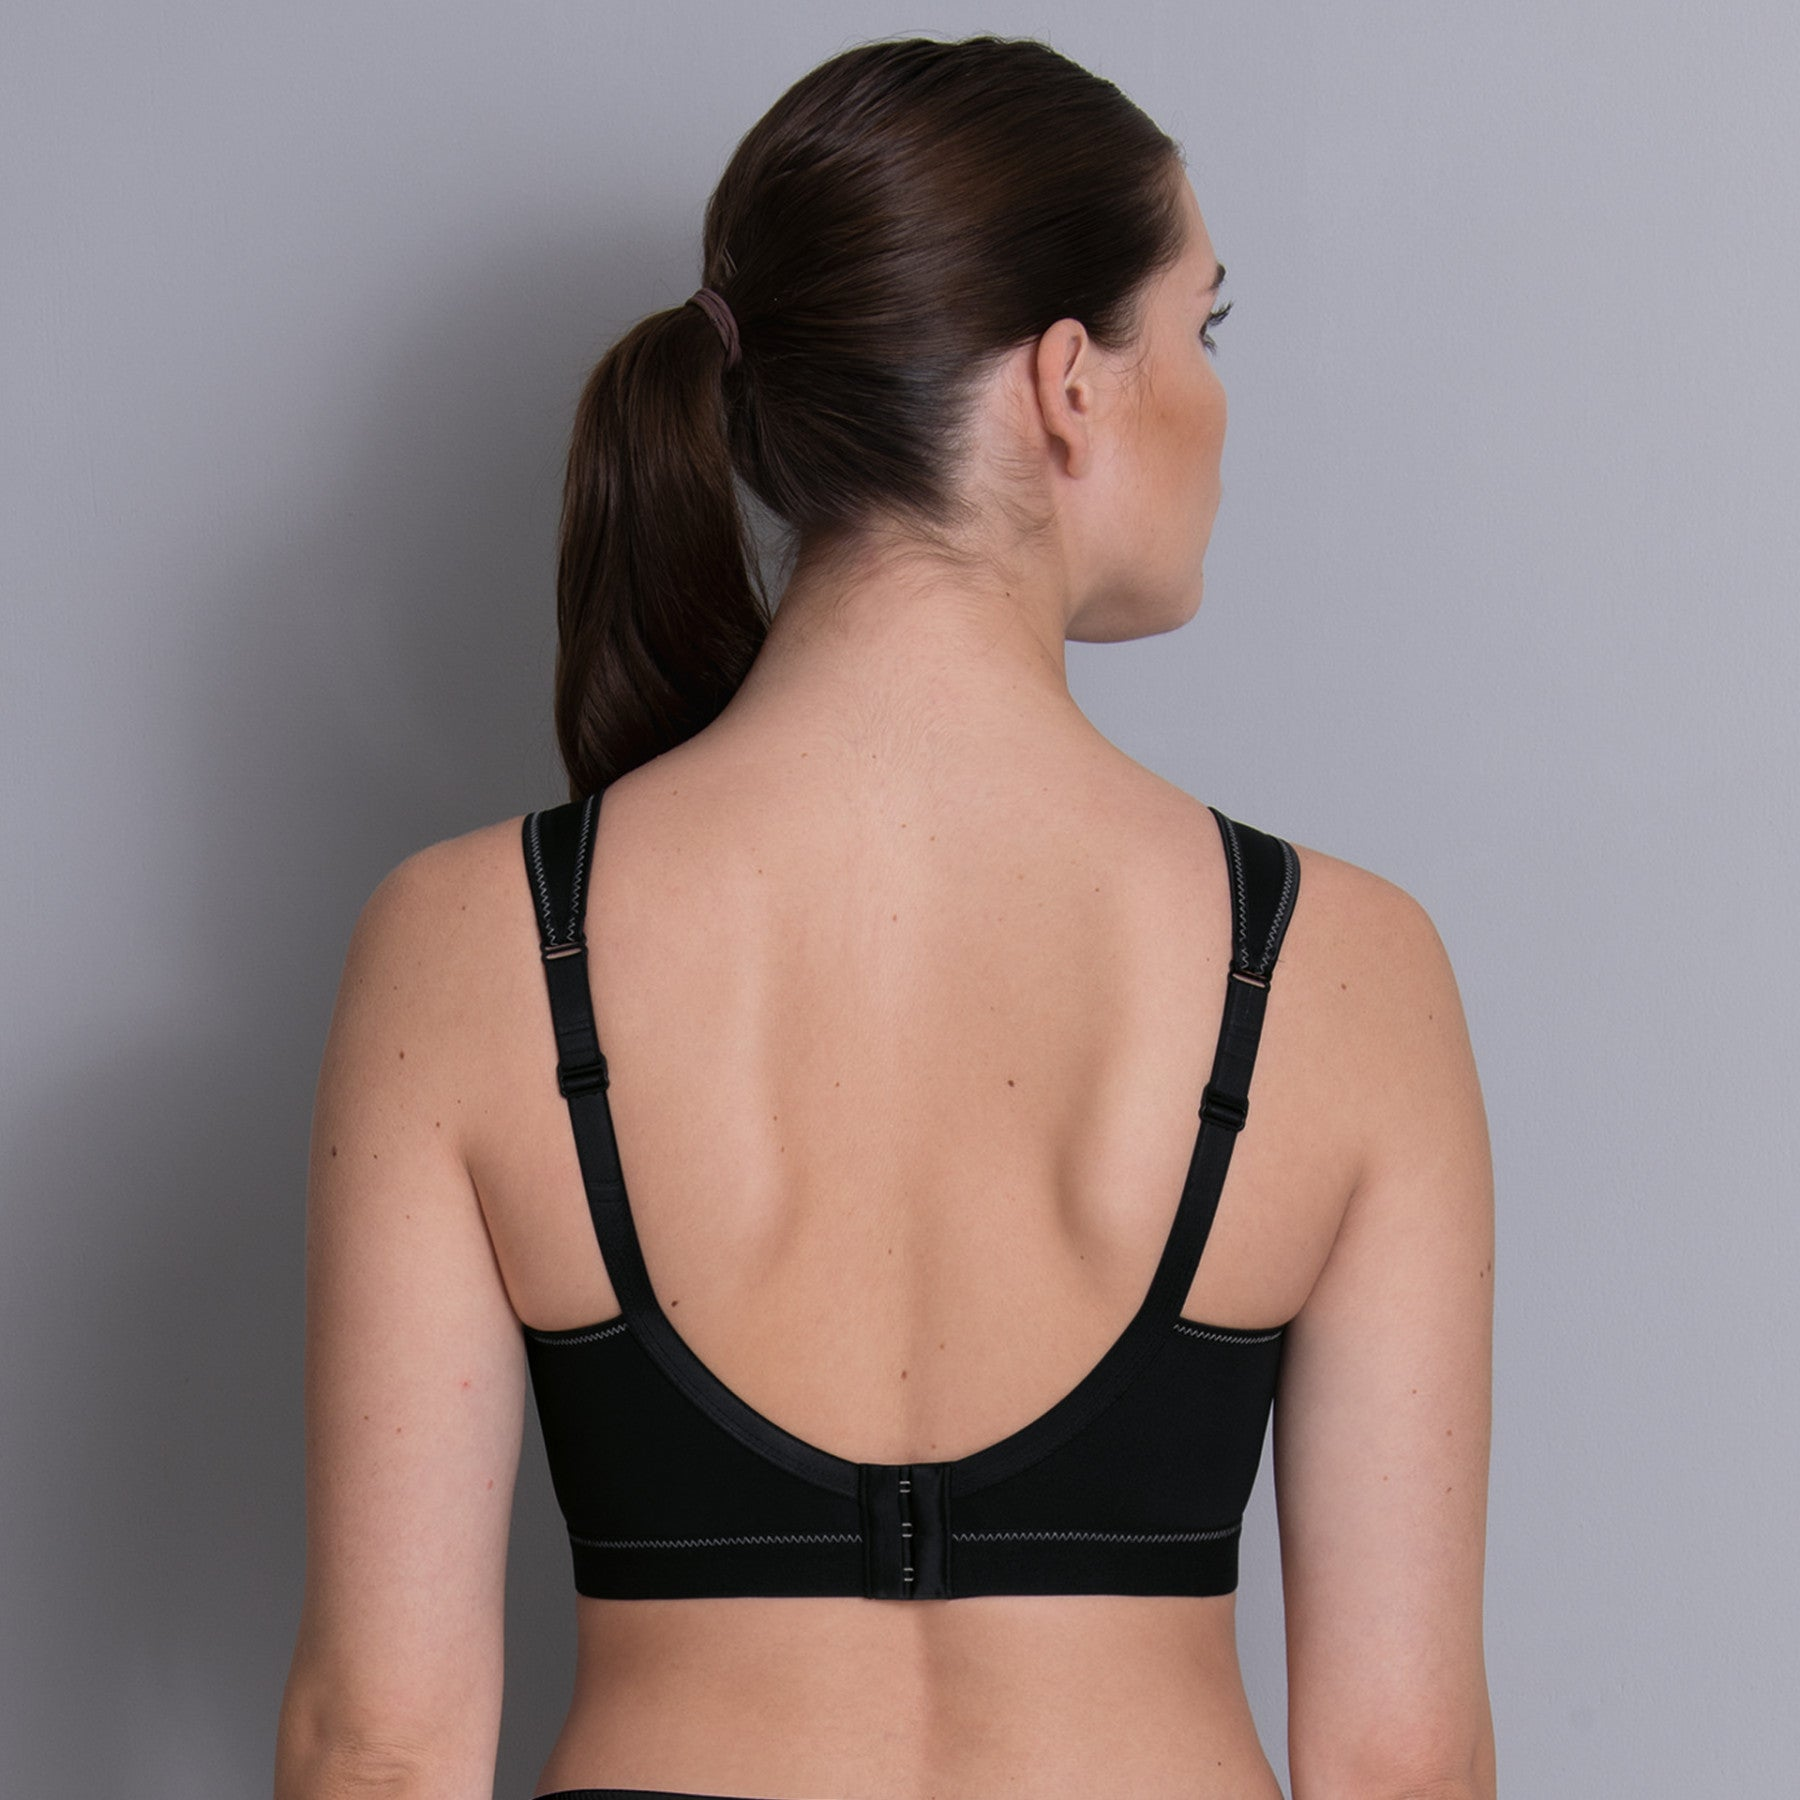 This Anita soft cup, wireless sports bra is made of light, breathable microfiber and features extra flat seams to reduce chafing. Seamless, unlined, non molded cups are non-stretch, single layer microfiber for optimal breast support.